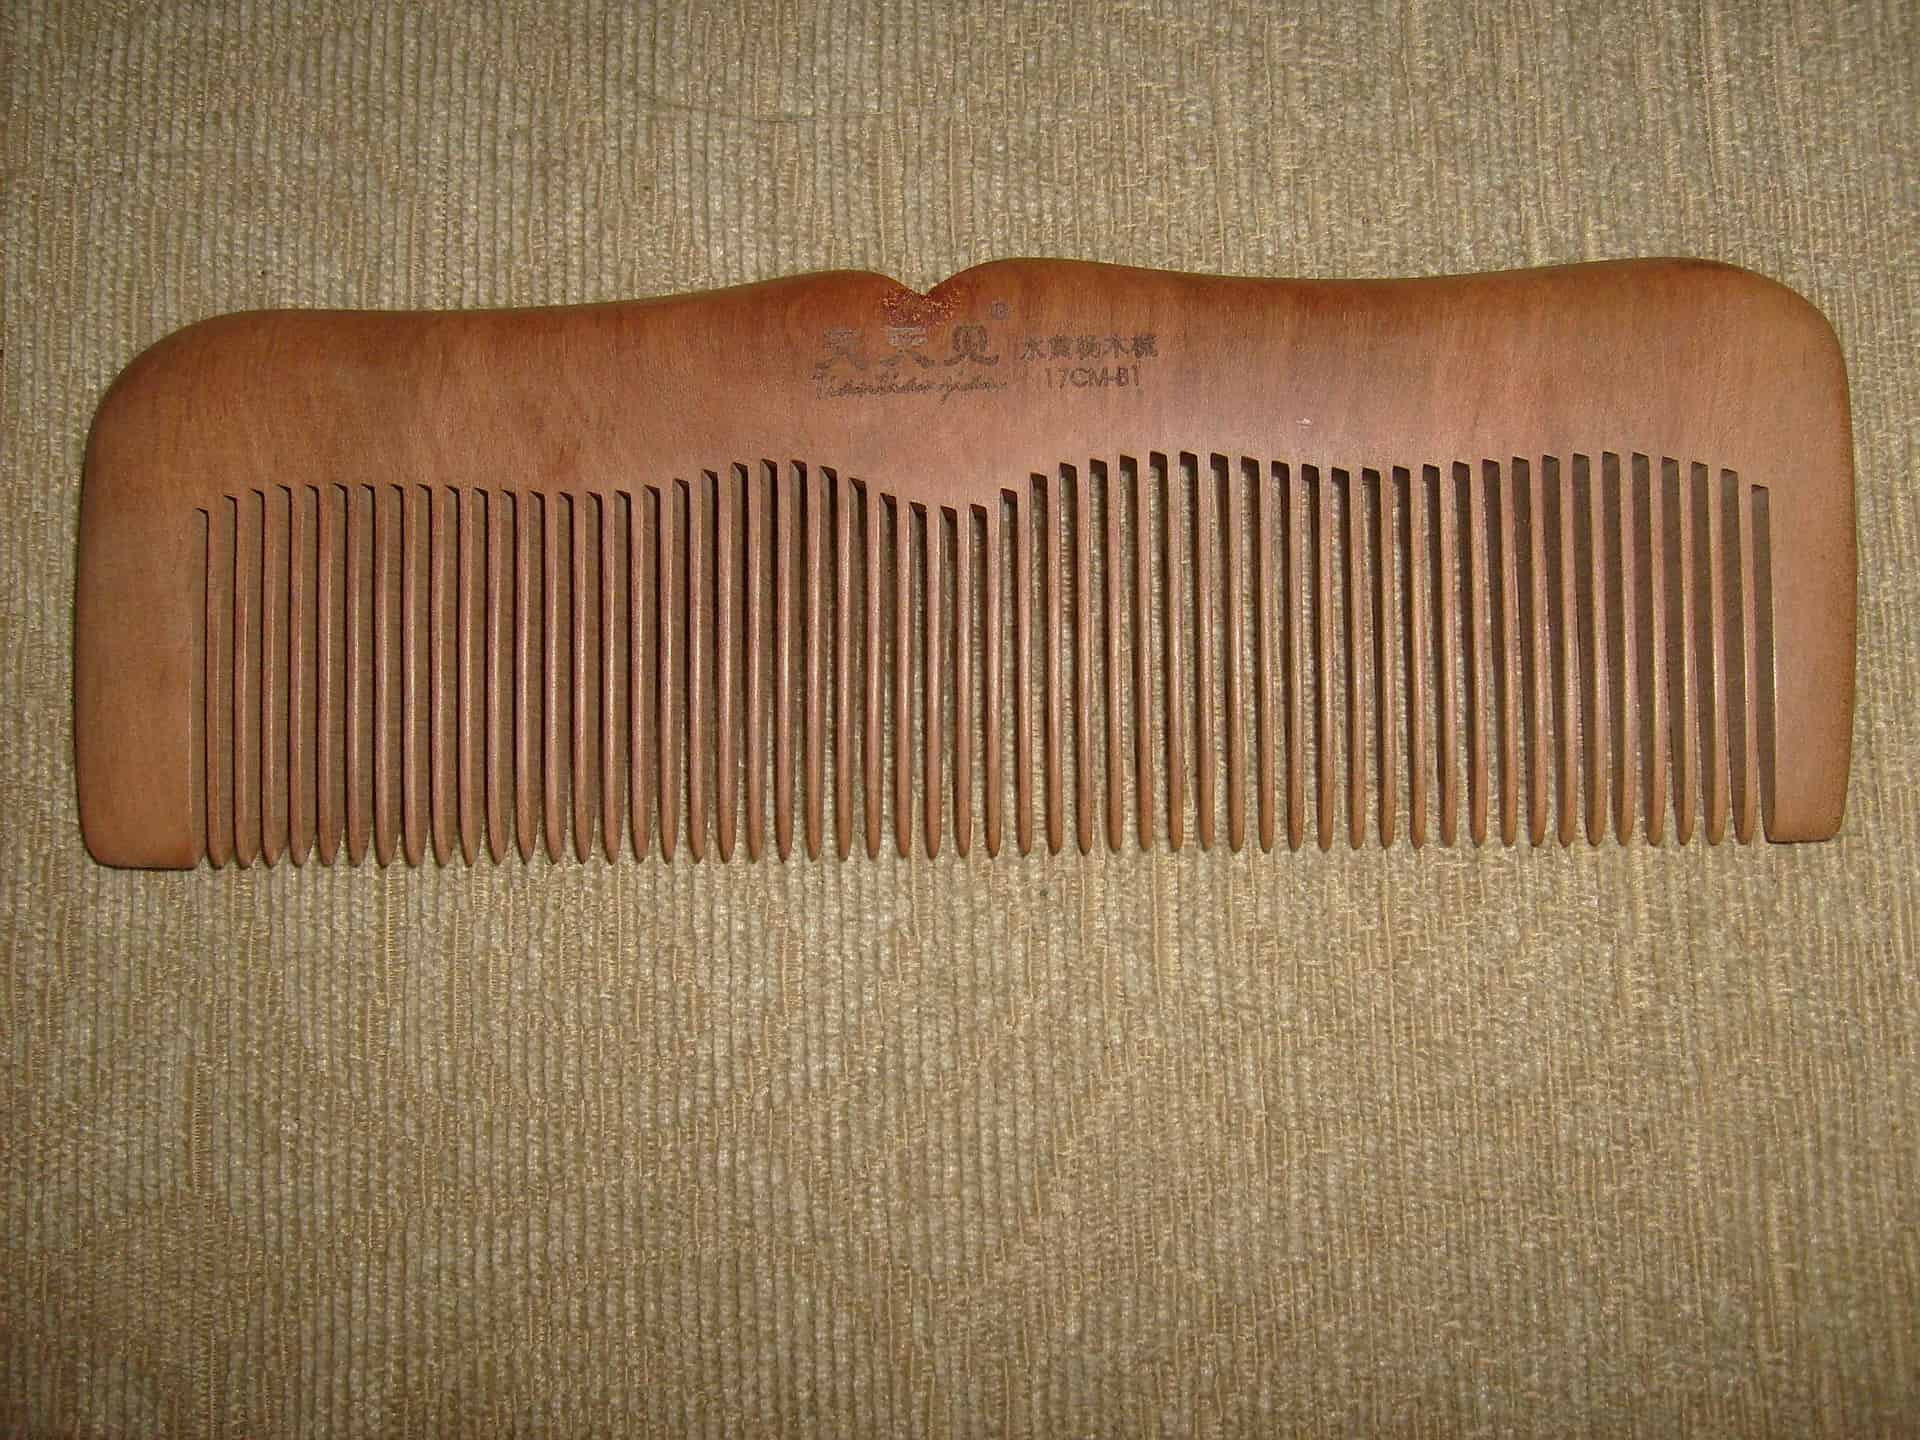 Clean wooden comb